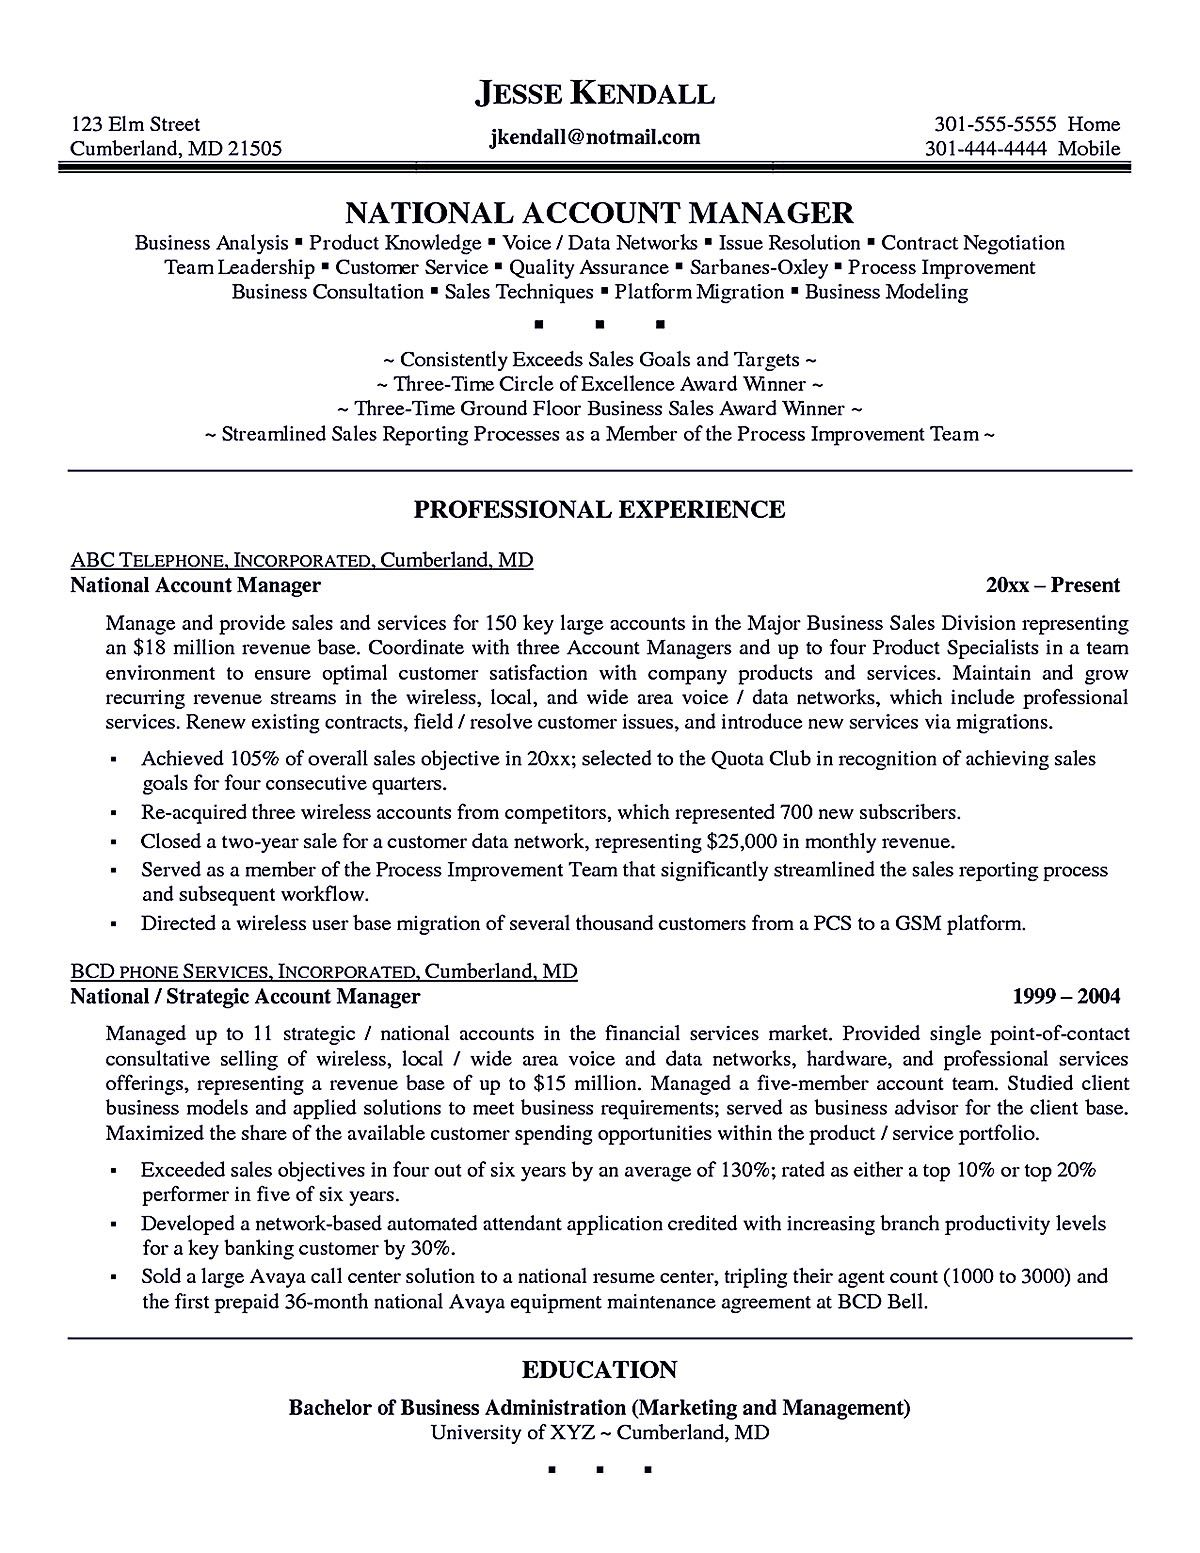 Incredible Account Executive Resume Samples Executive Resume Manager Resume Resume Examples